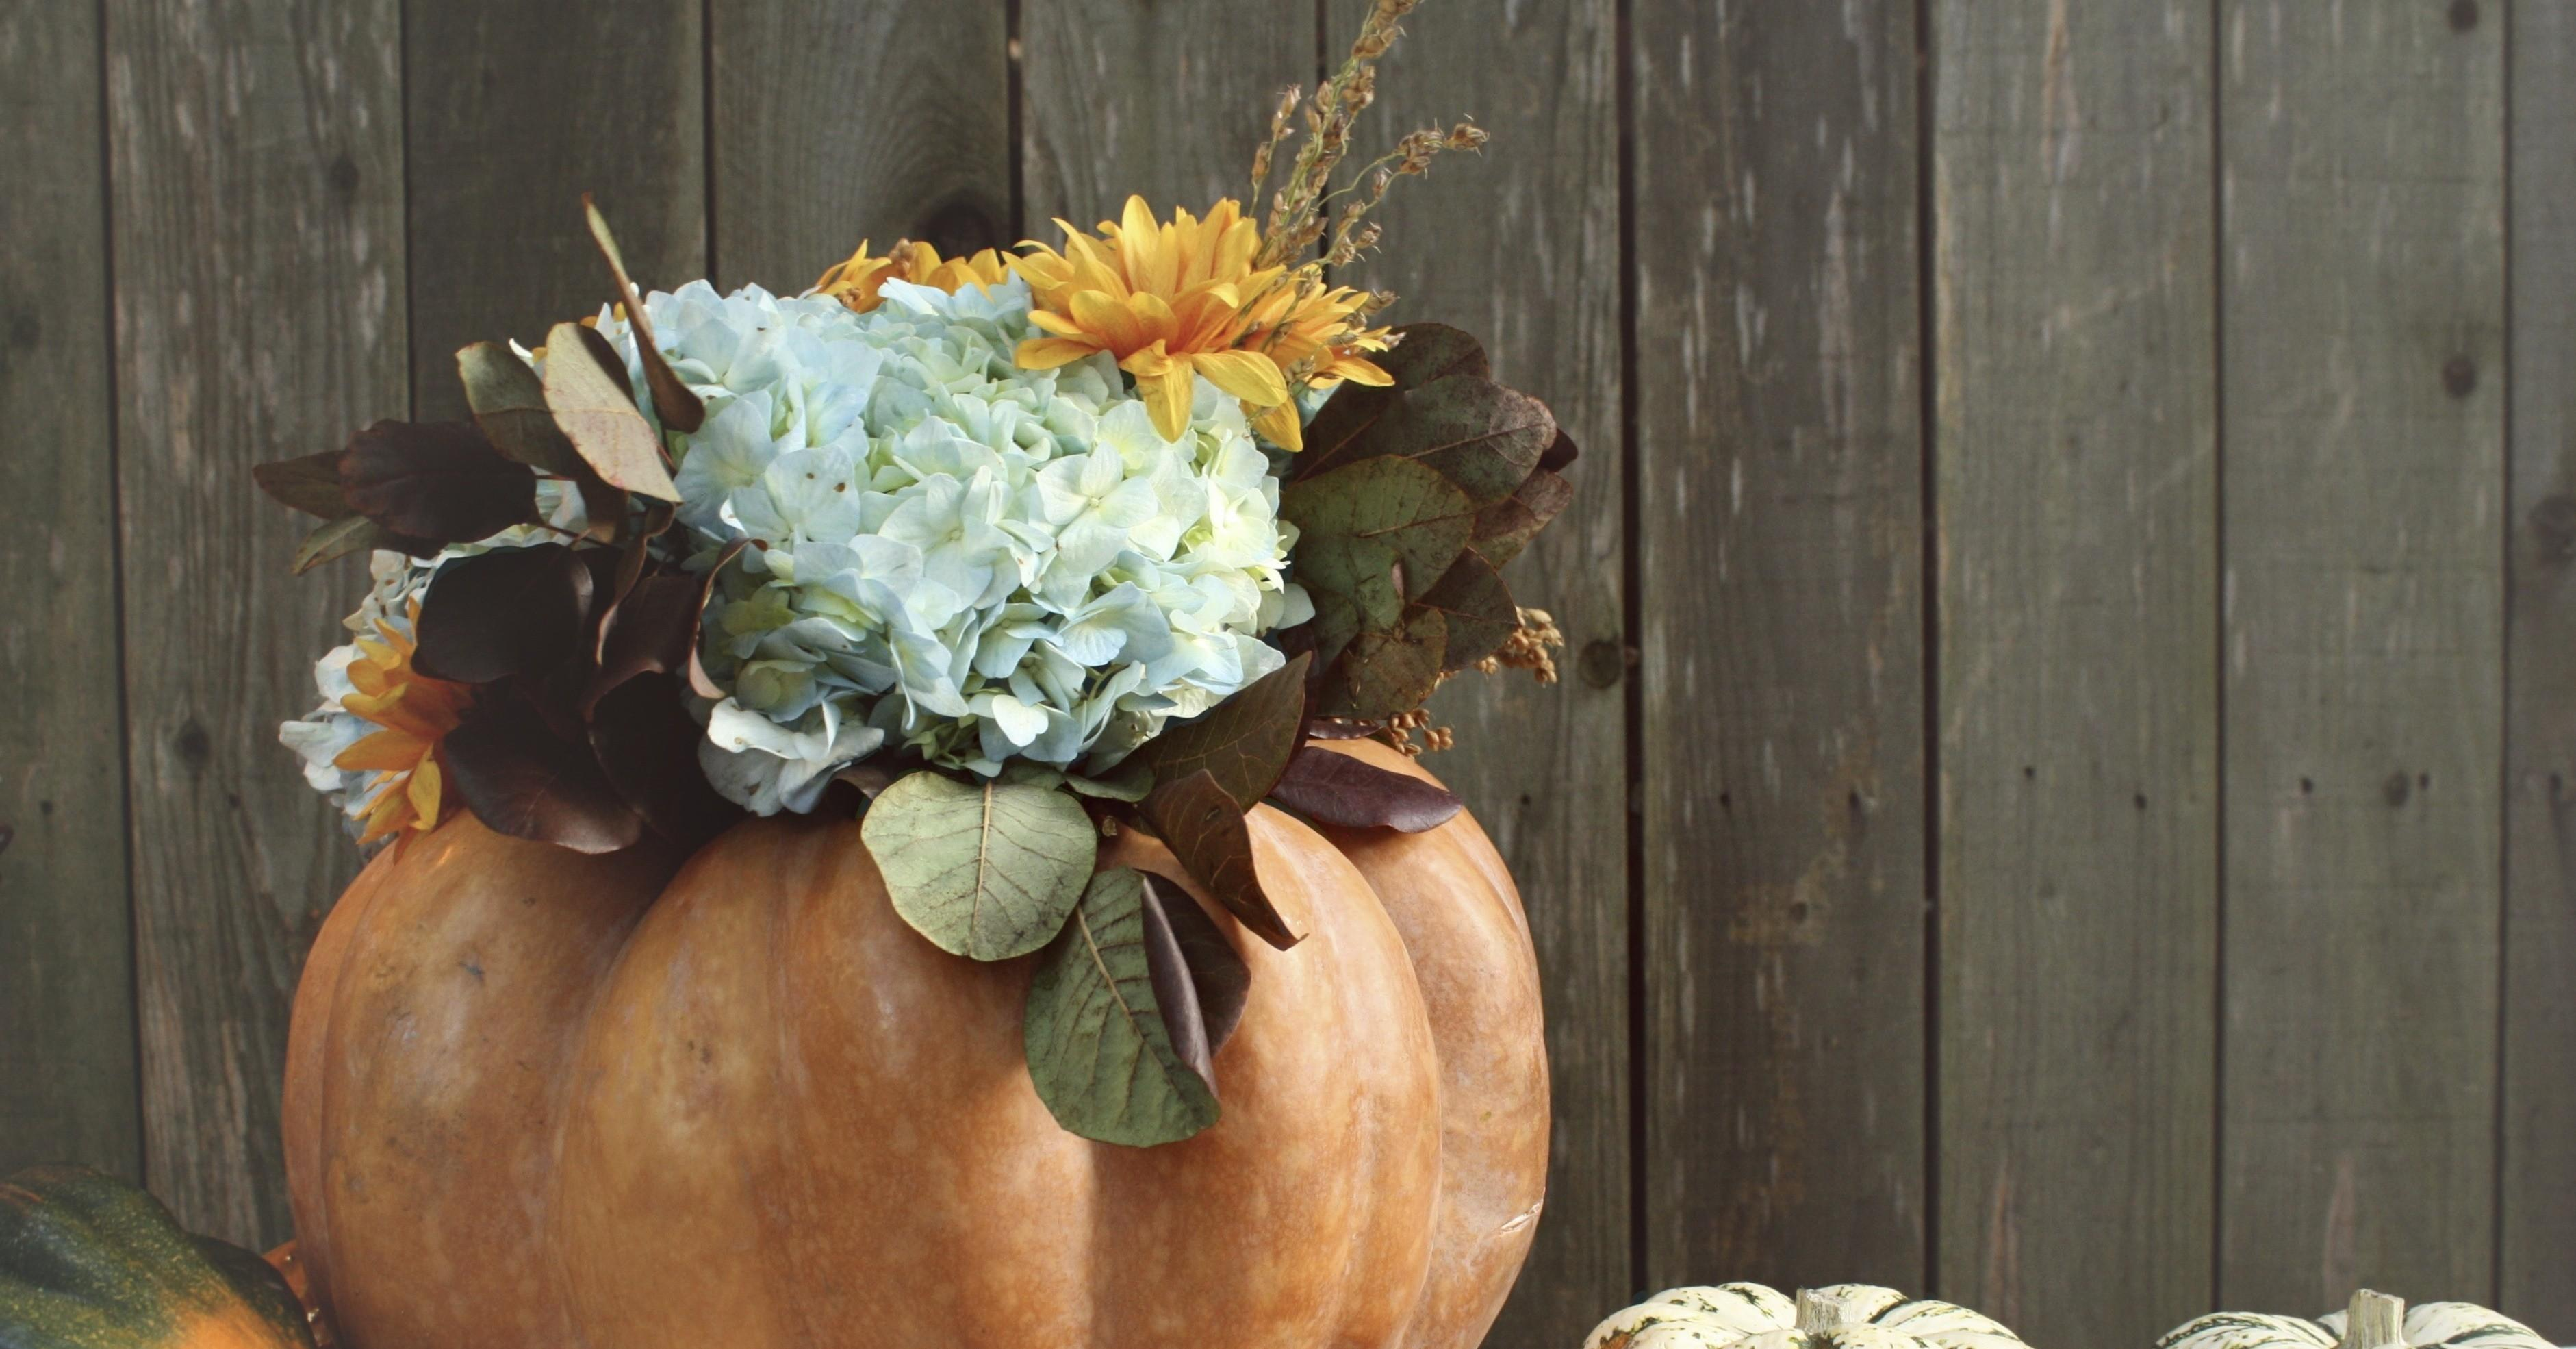 Centerpiece Pumpkin Vase Ultimate Guide Your